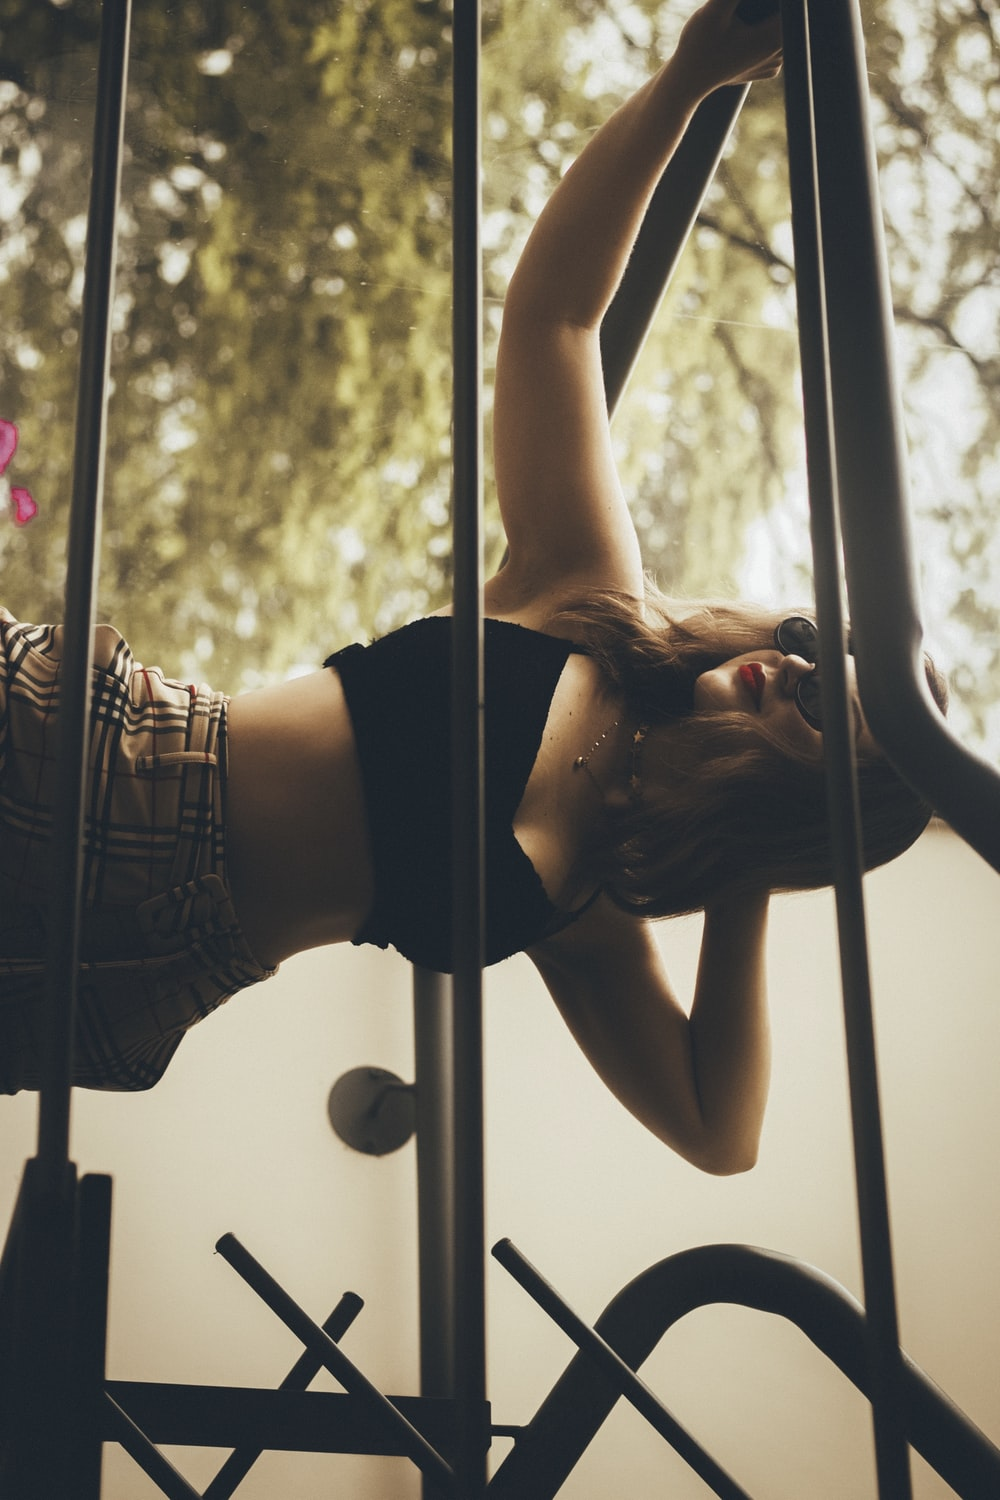 woman in black sports bra and brown shorts climbing on ladder